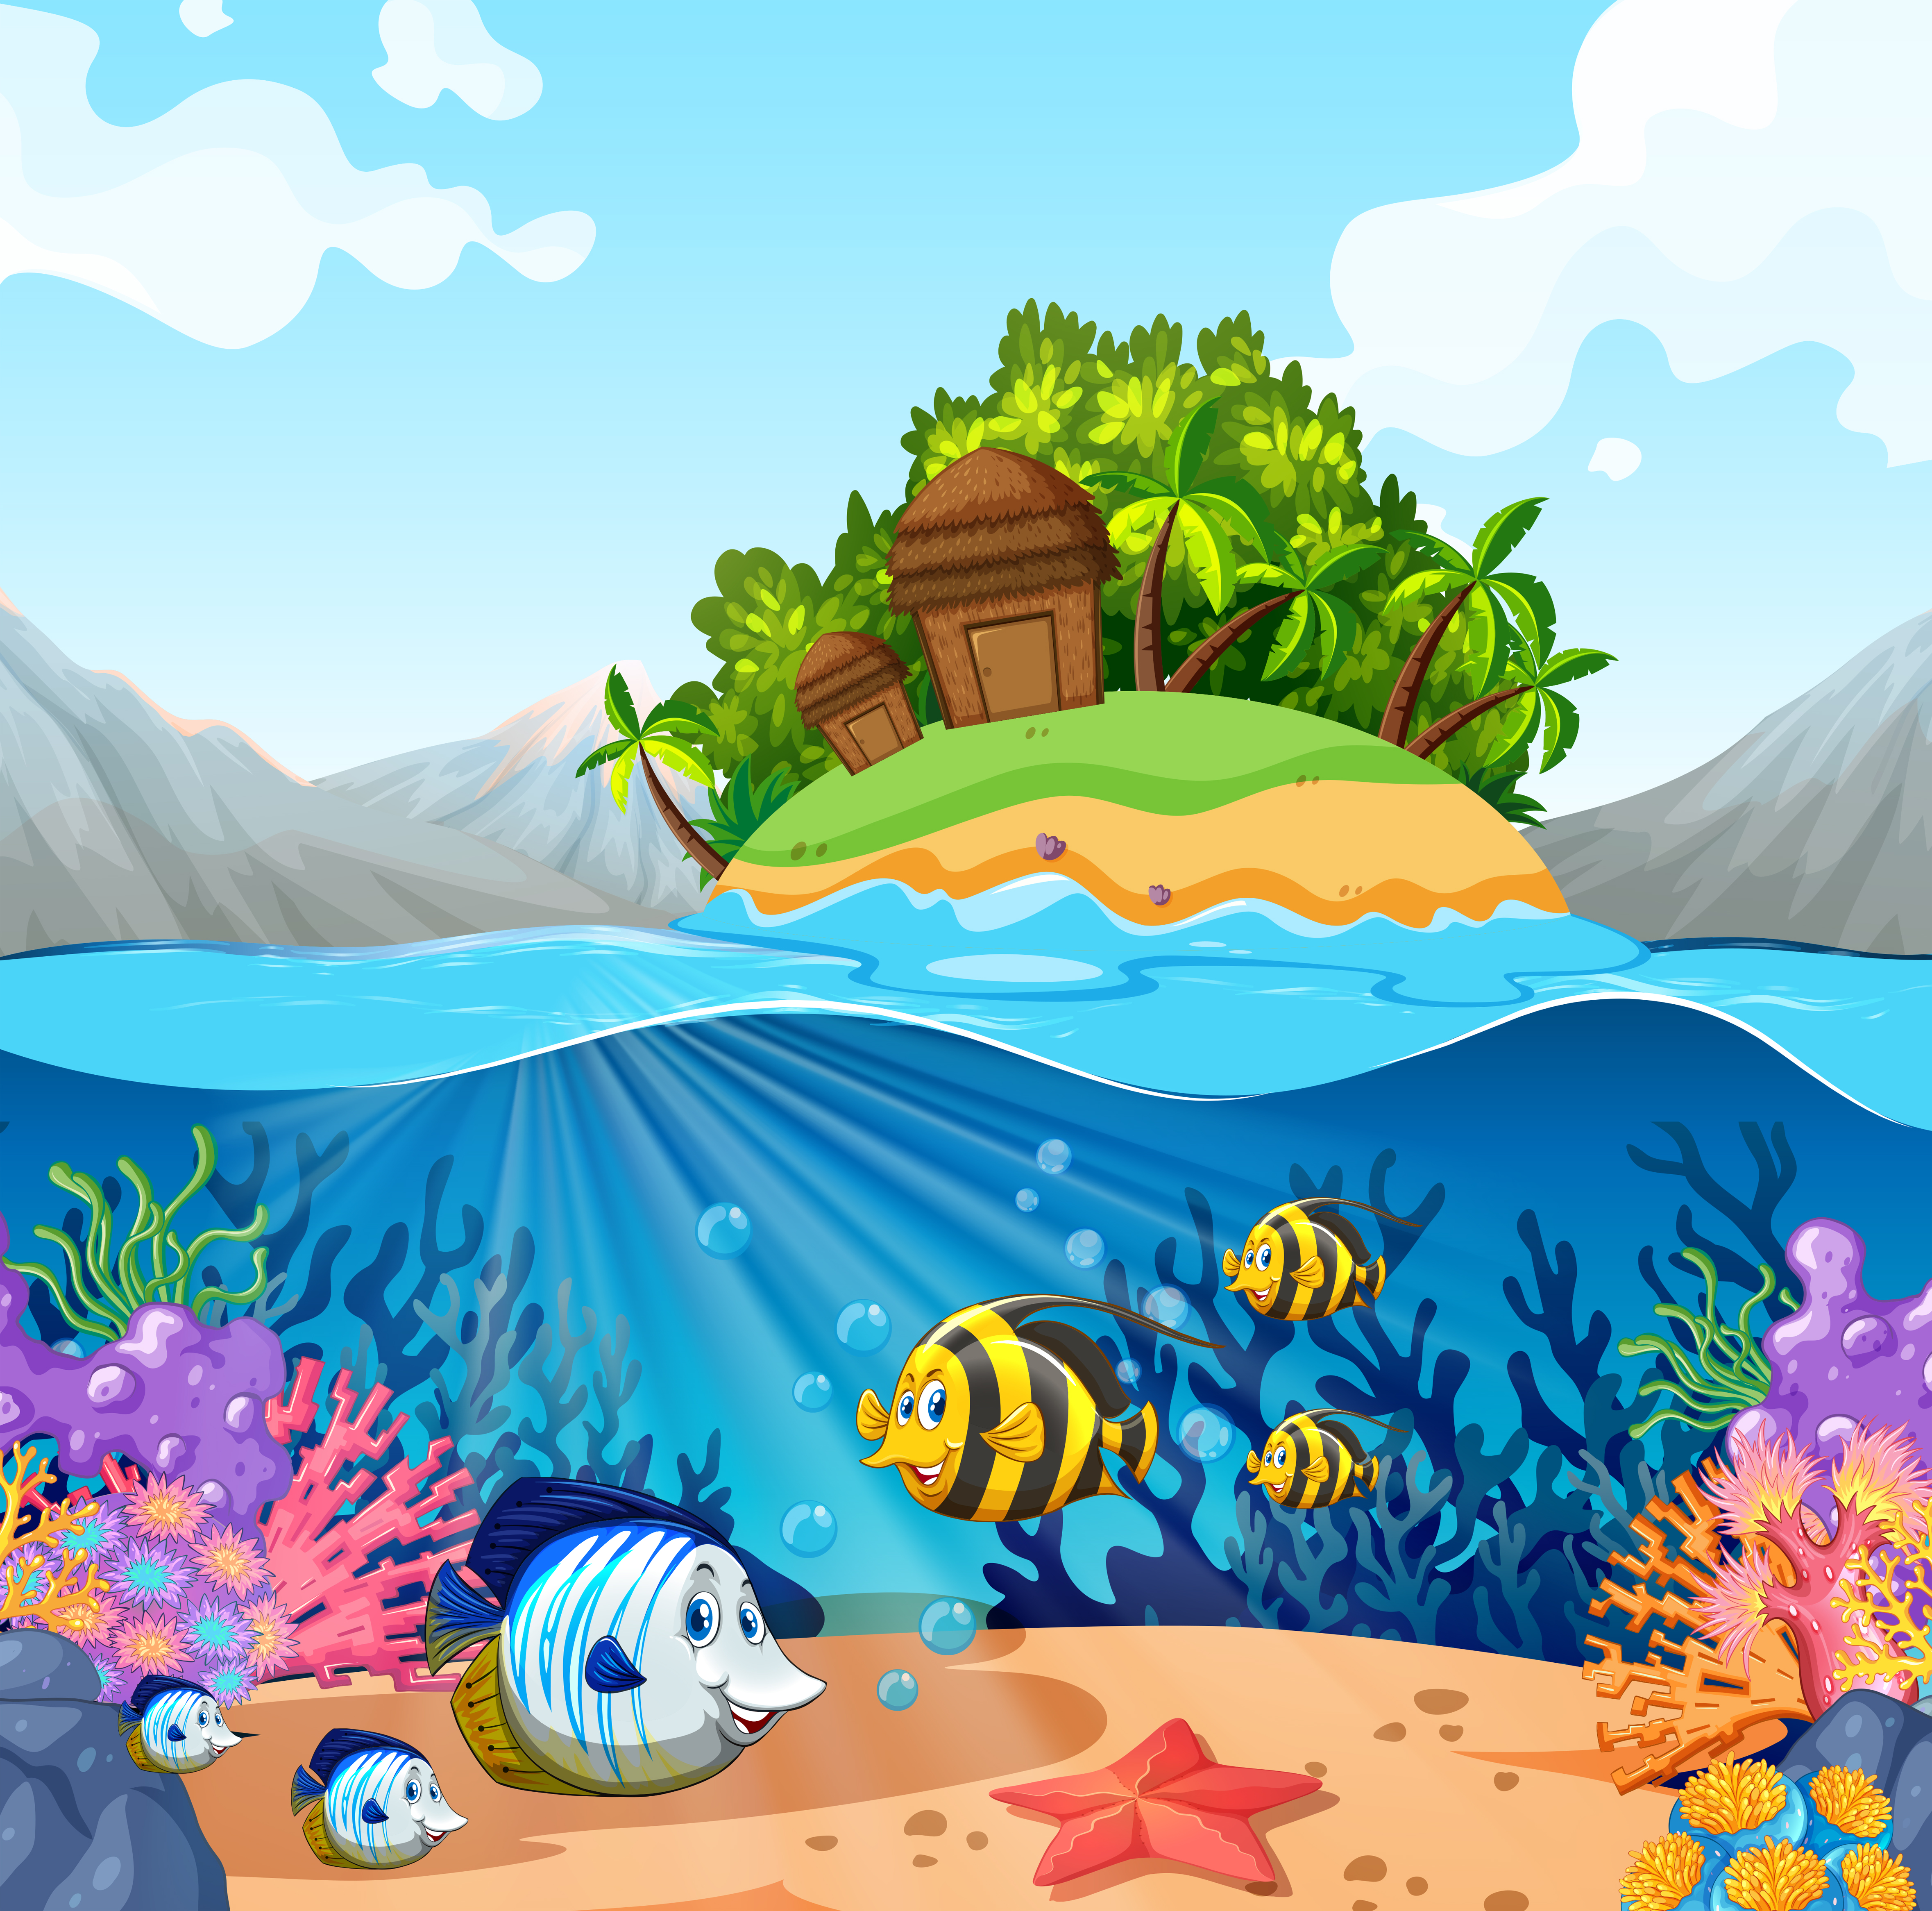 Ocean view with island and fish underwater - Download Free ...